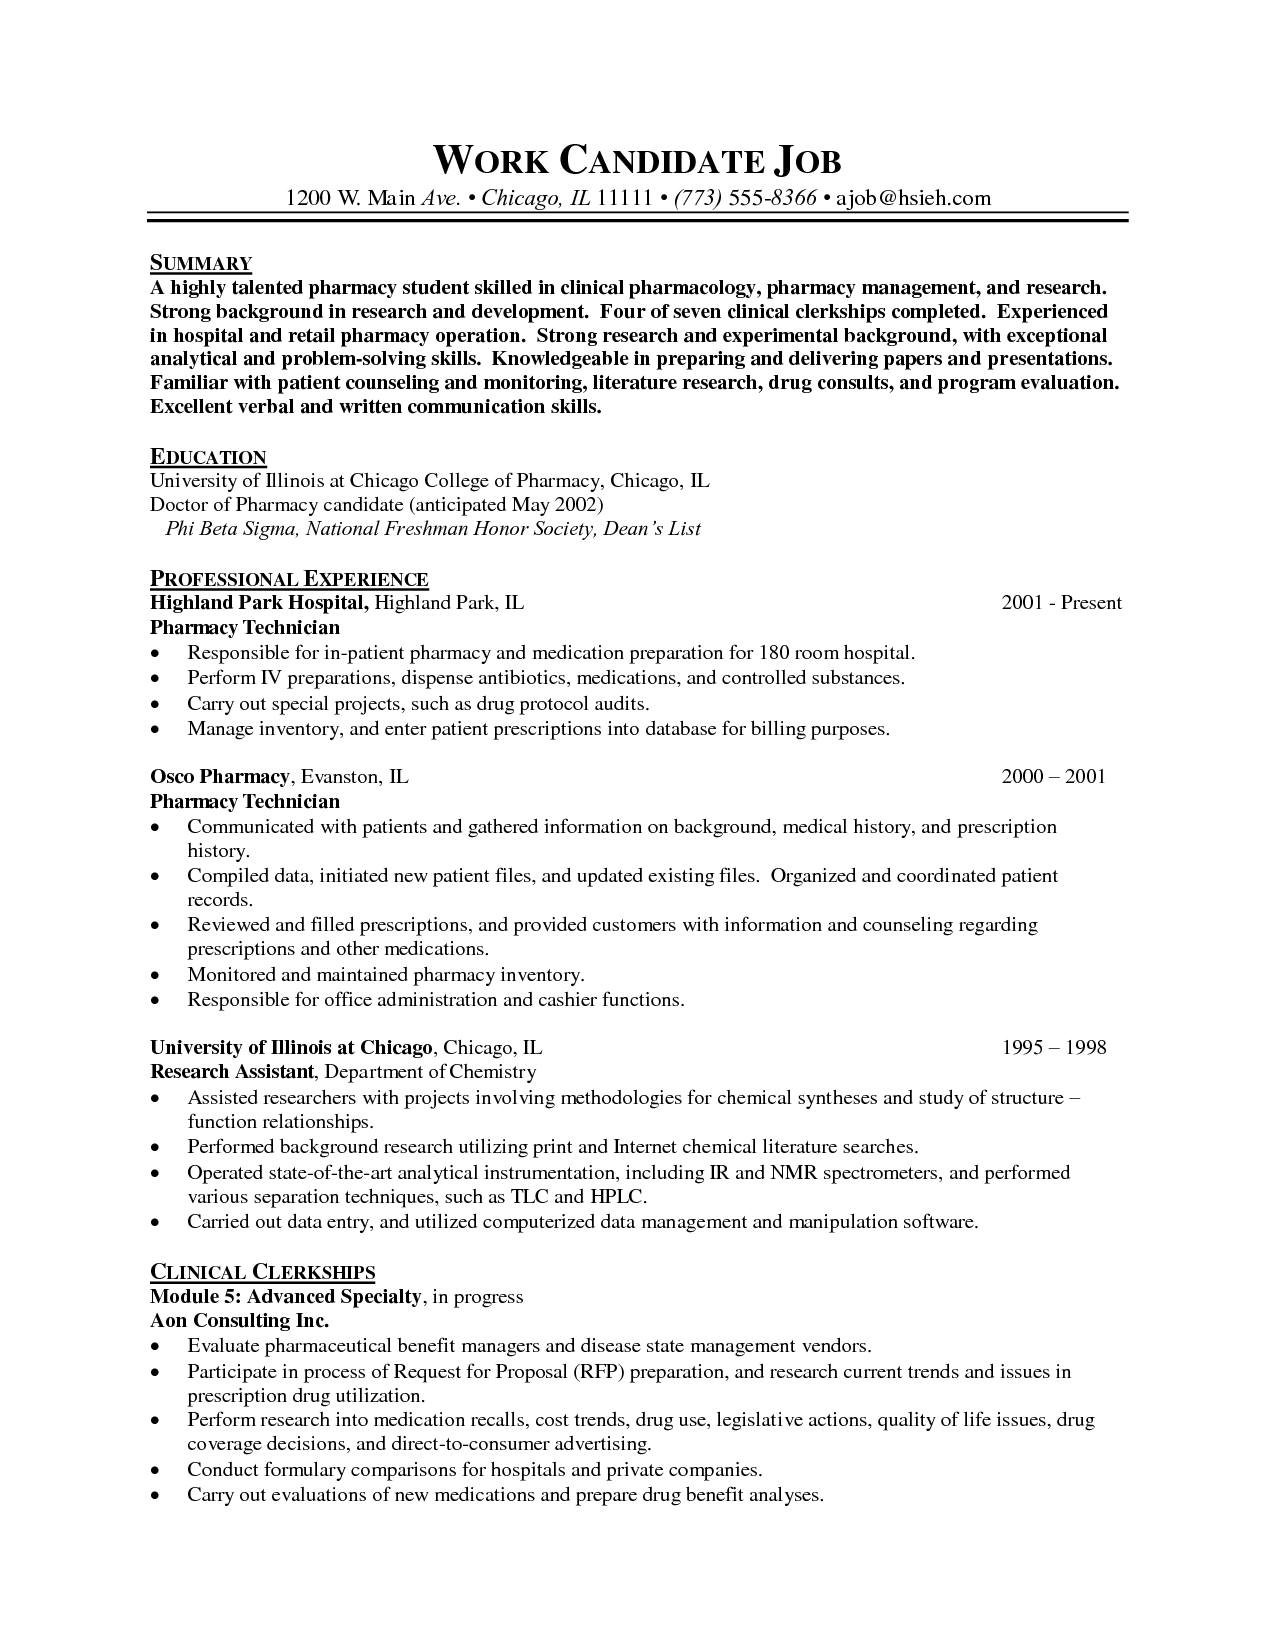 professional resume cover letter sample get instant risk free access to the full cover letter samplepharmacy technicianresume